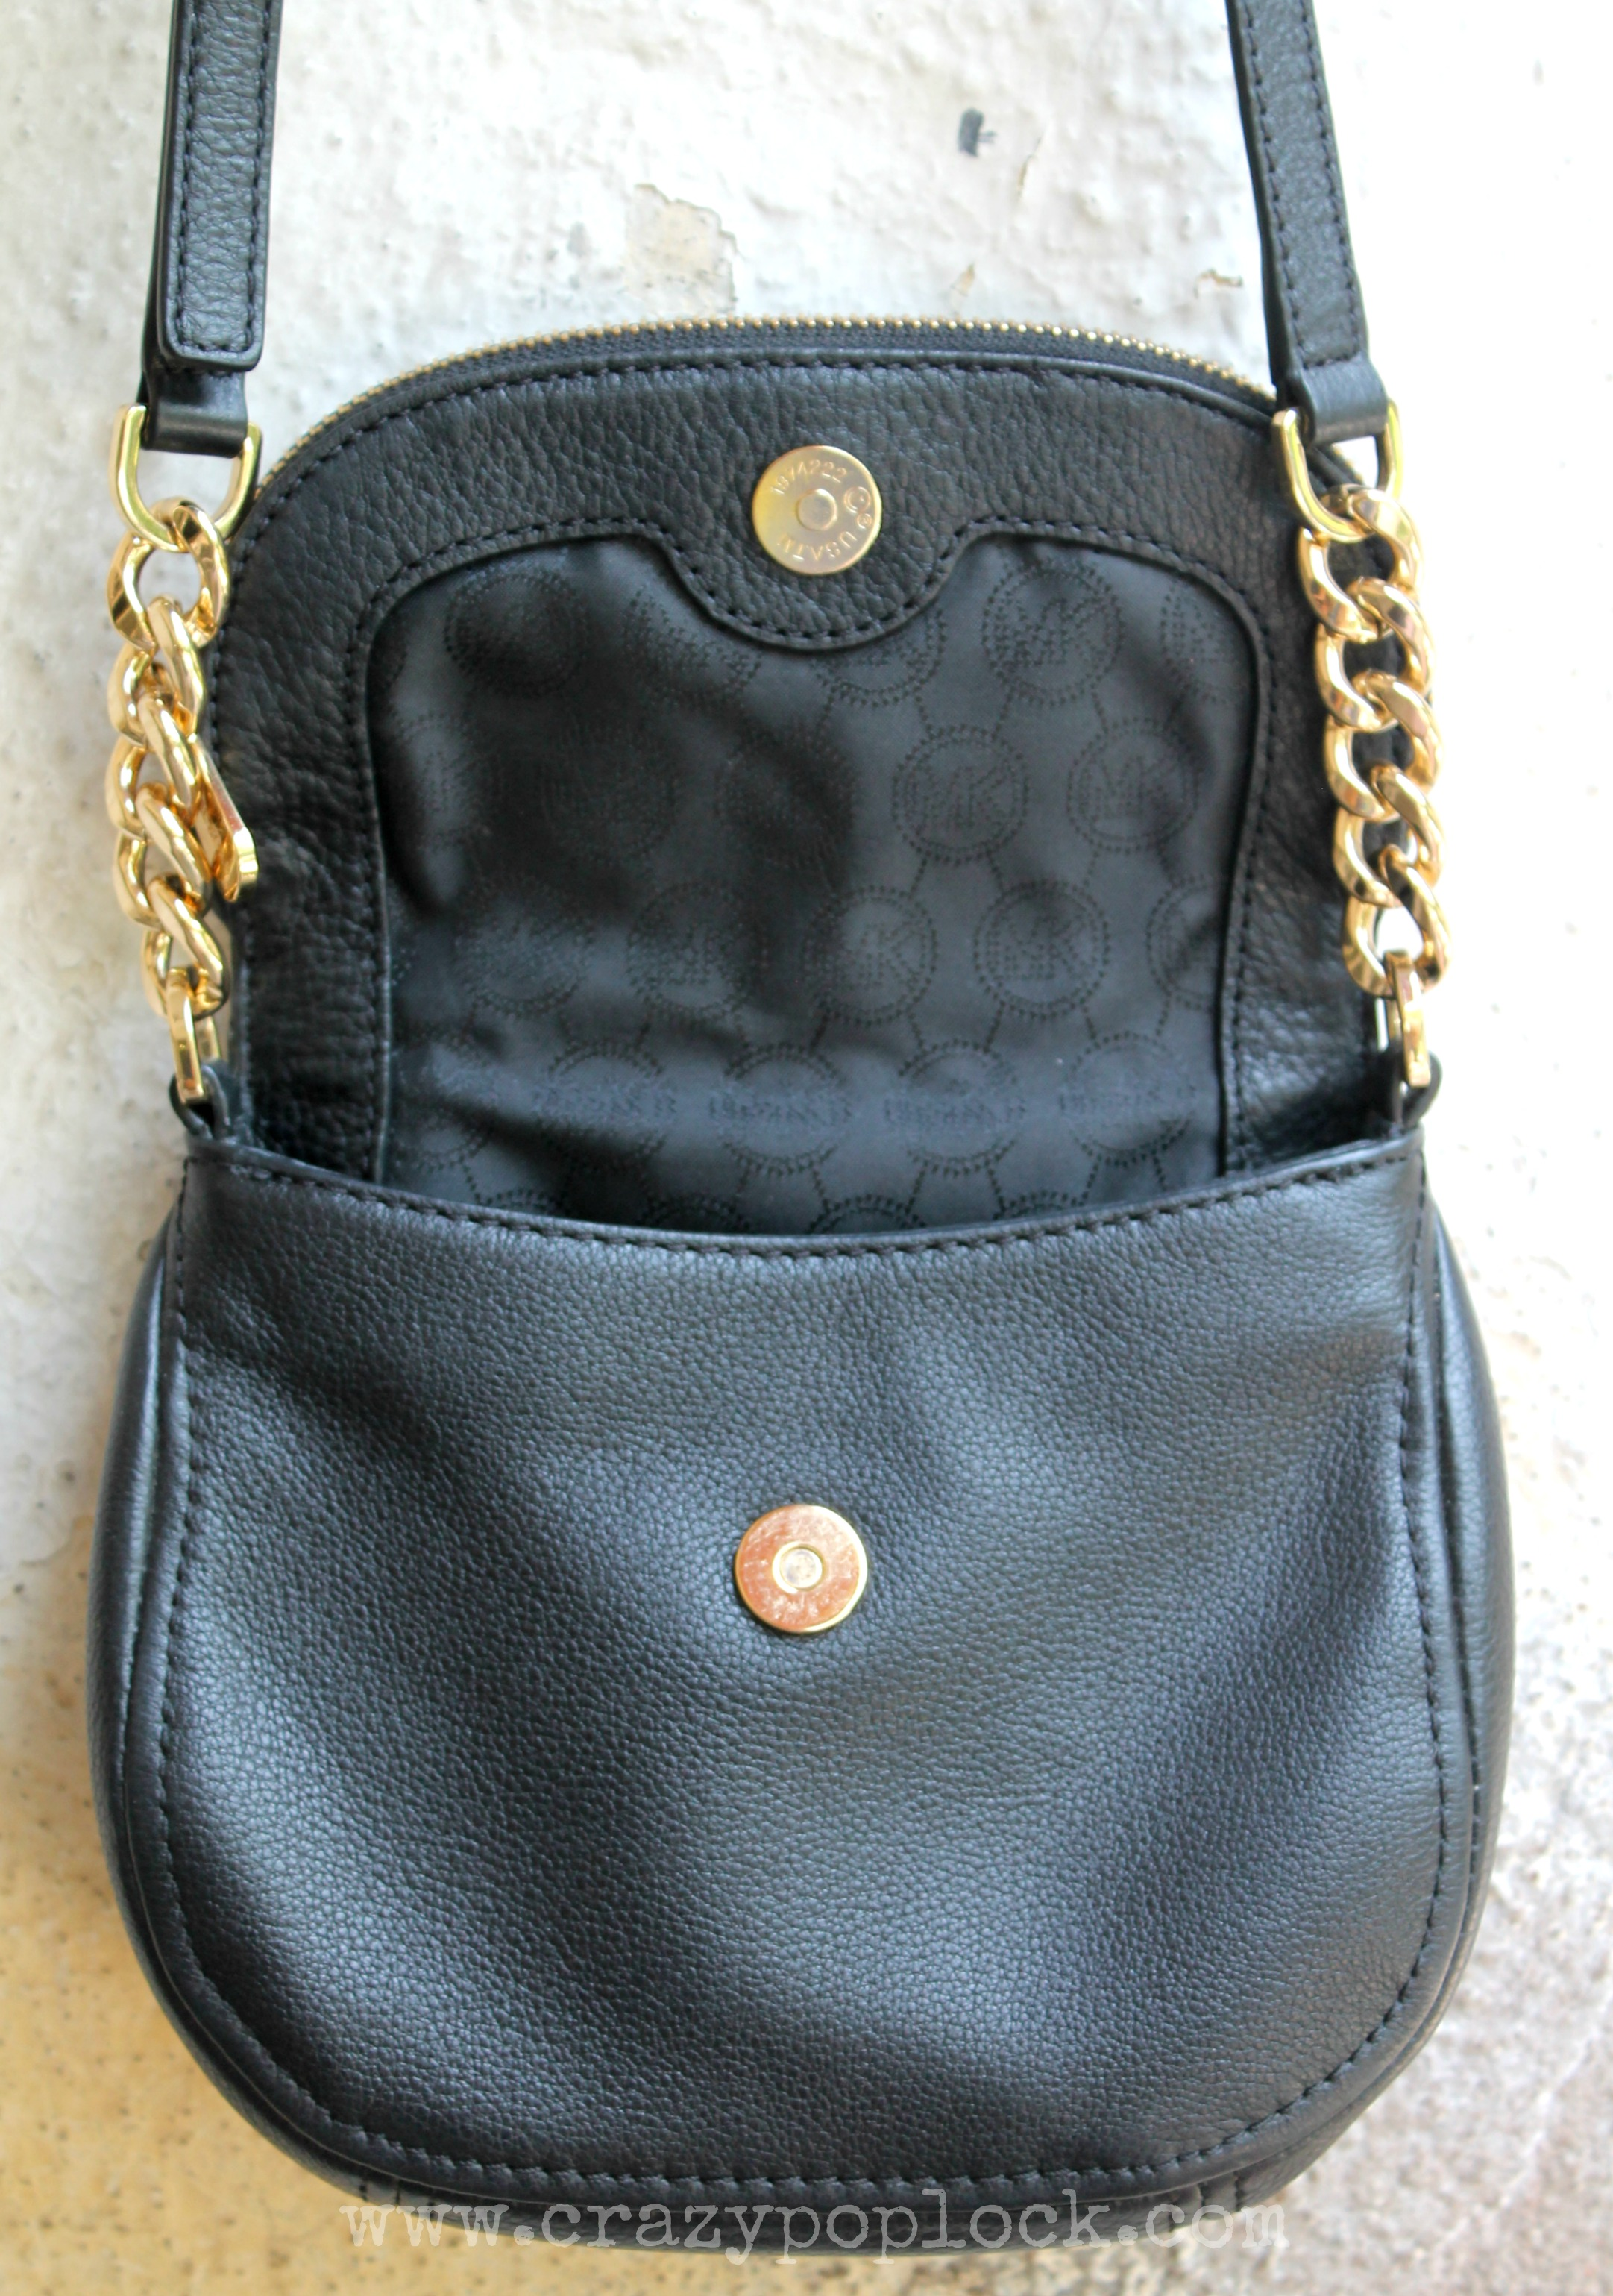 381002a325f5 Buy michael kors bedford purse 2016   OFF62% Discounted